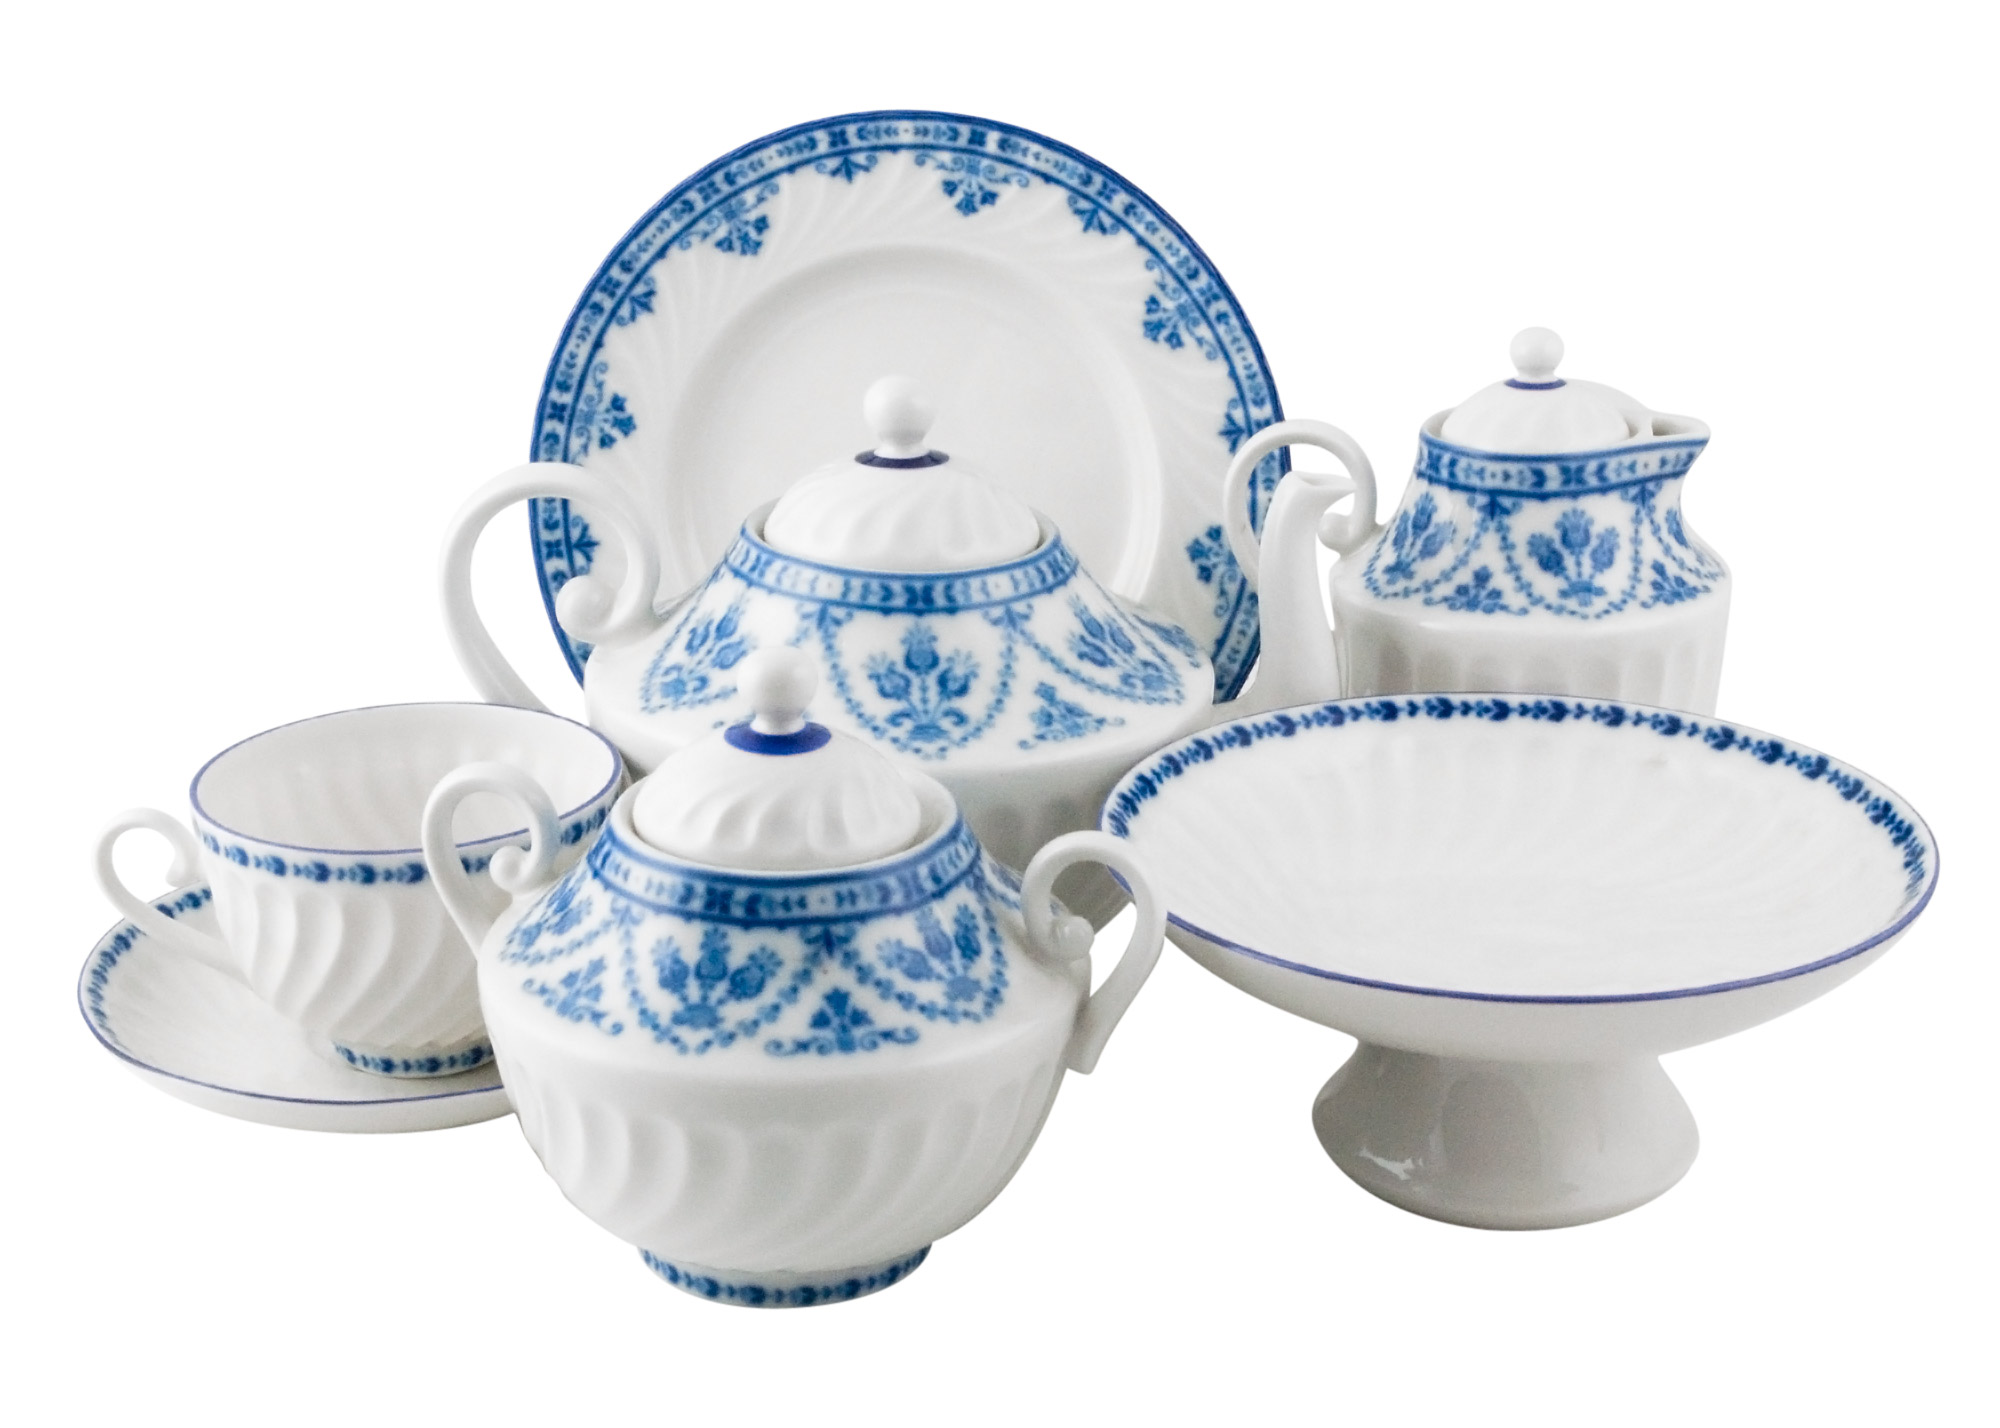 Buy Cobalt Frieze Tea & Coffee Set remnants at GoldenCockerel.com